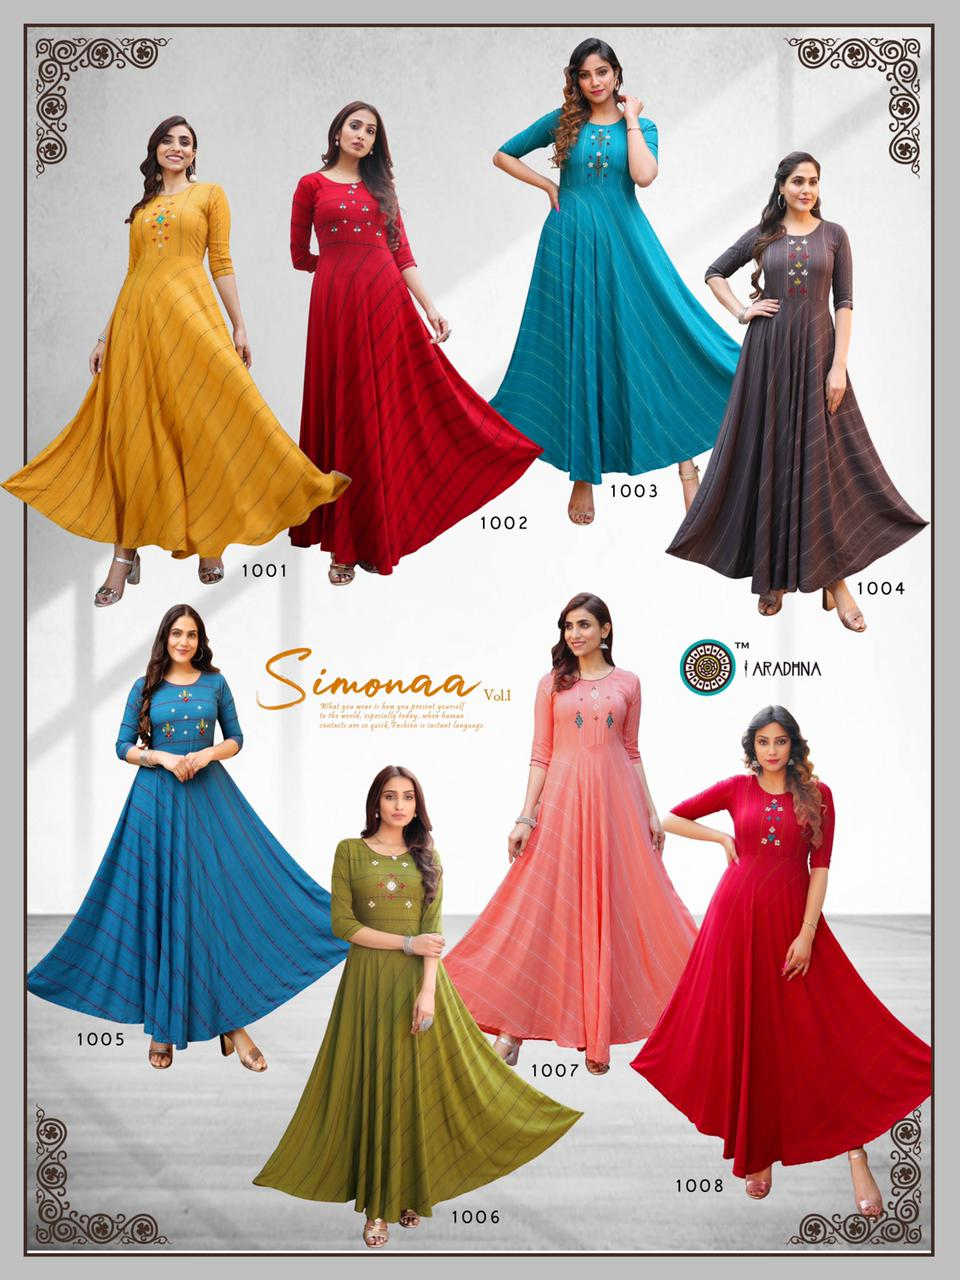 Aradhna Simonaa Vol 1 Kurti Wholesale Catalog 8 Pcs 11 - Aradhna Simonaa Vol 1 Kurti Wholesale Catalog 8 Pcs